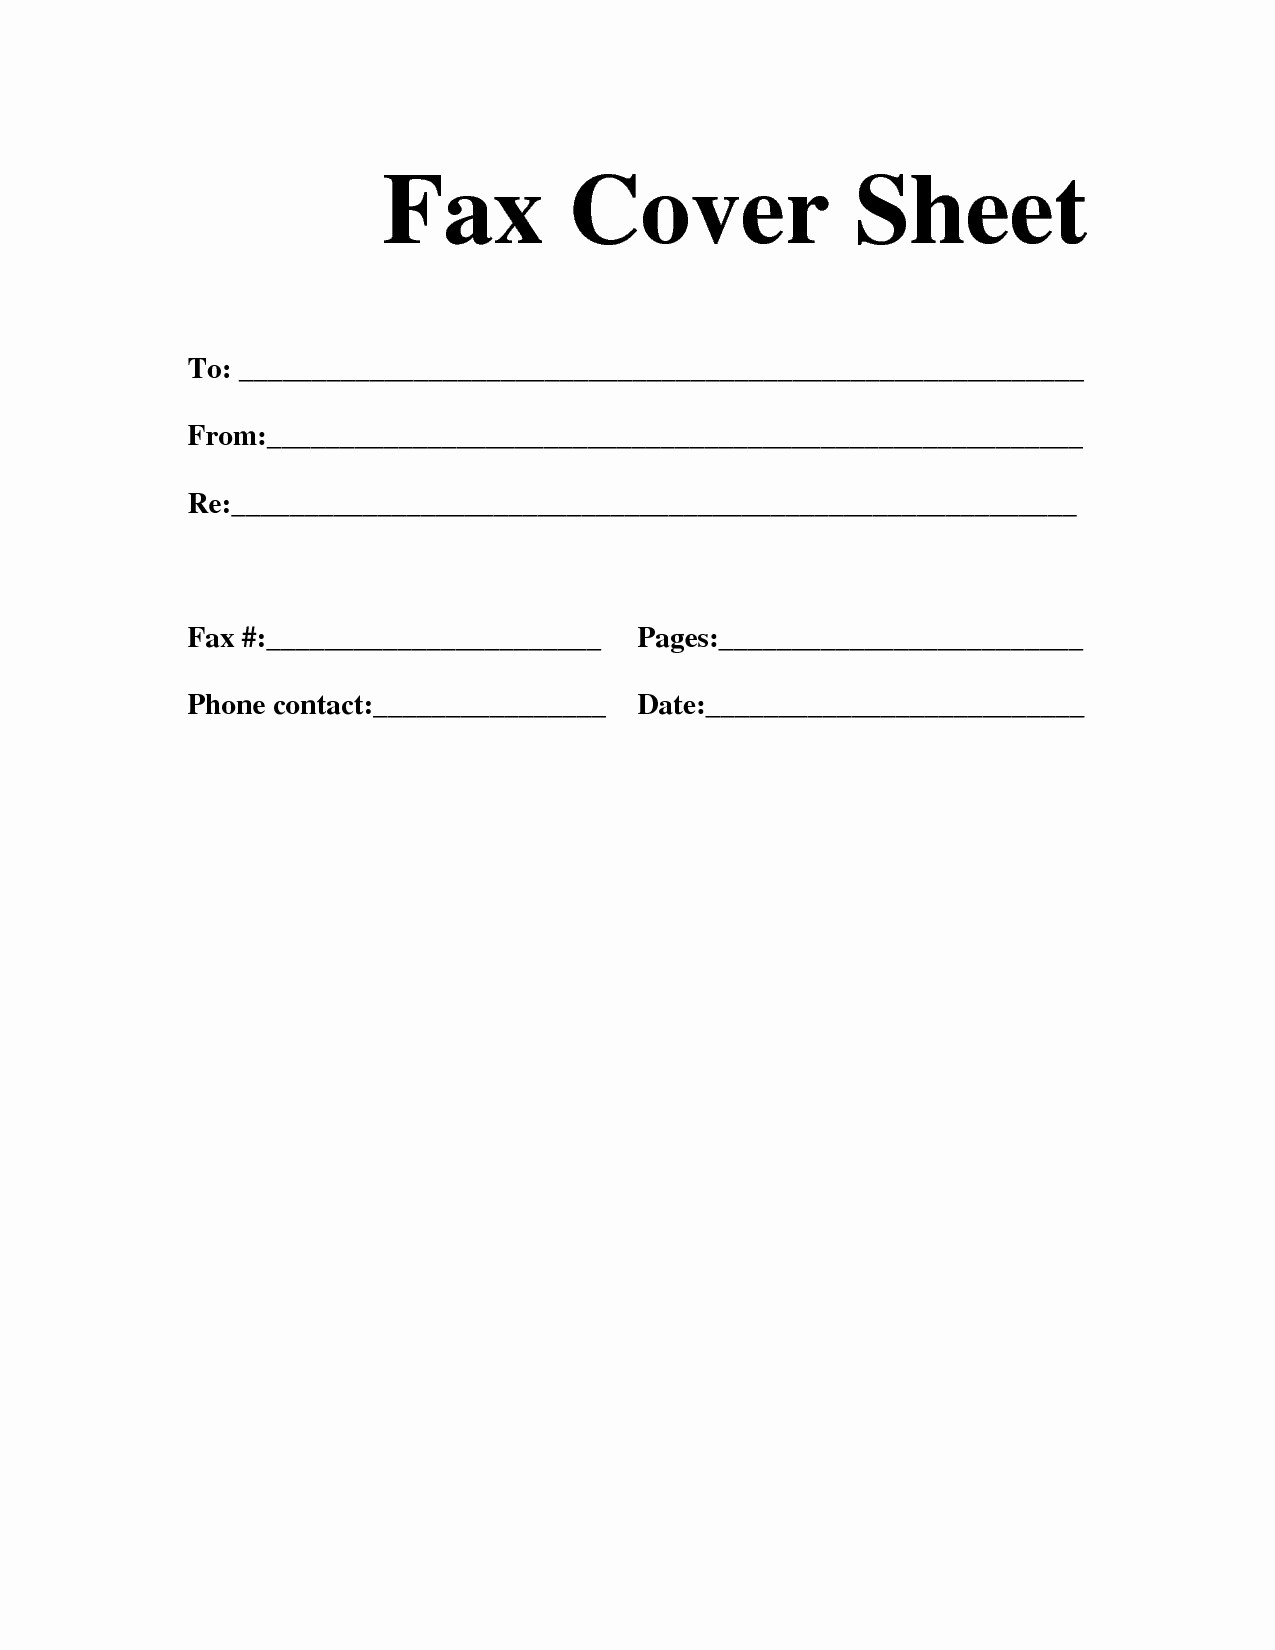 Word Template Fax Cover Sheet Unique Fax Cover Sheet for Word Portablegasgrillweber